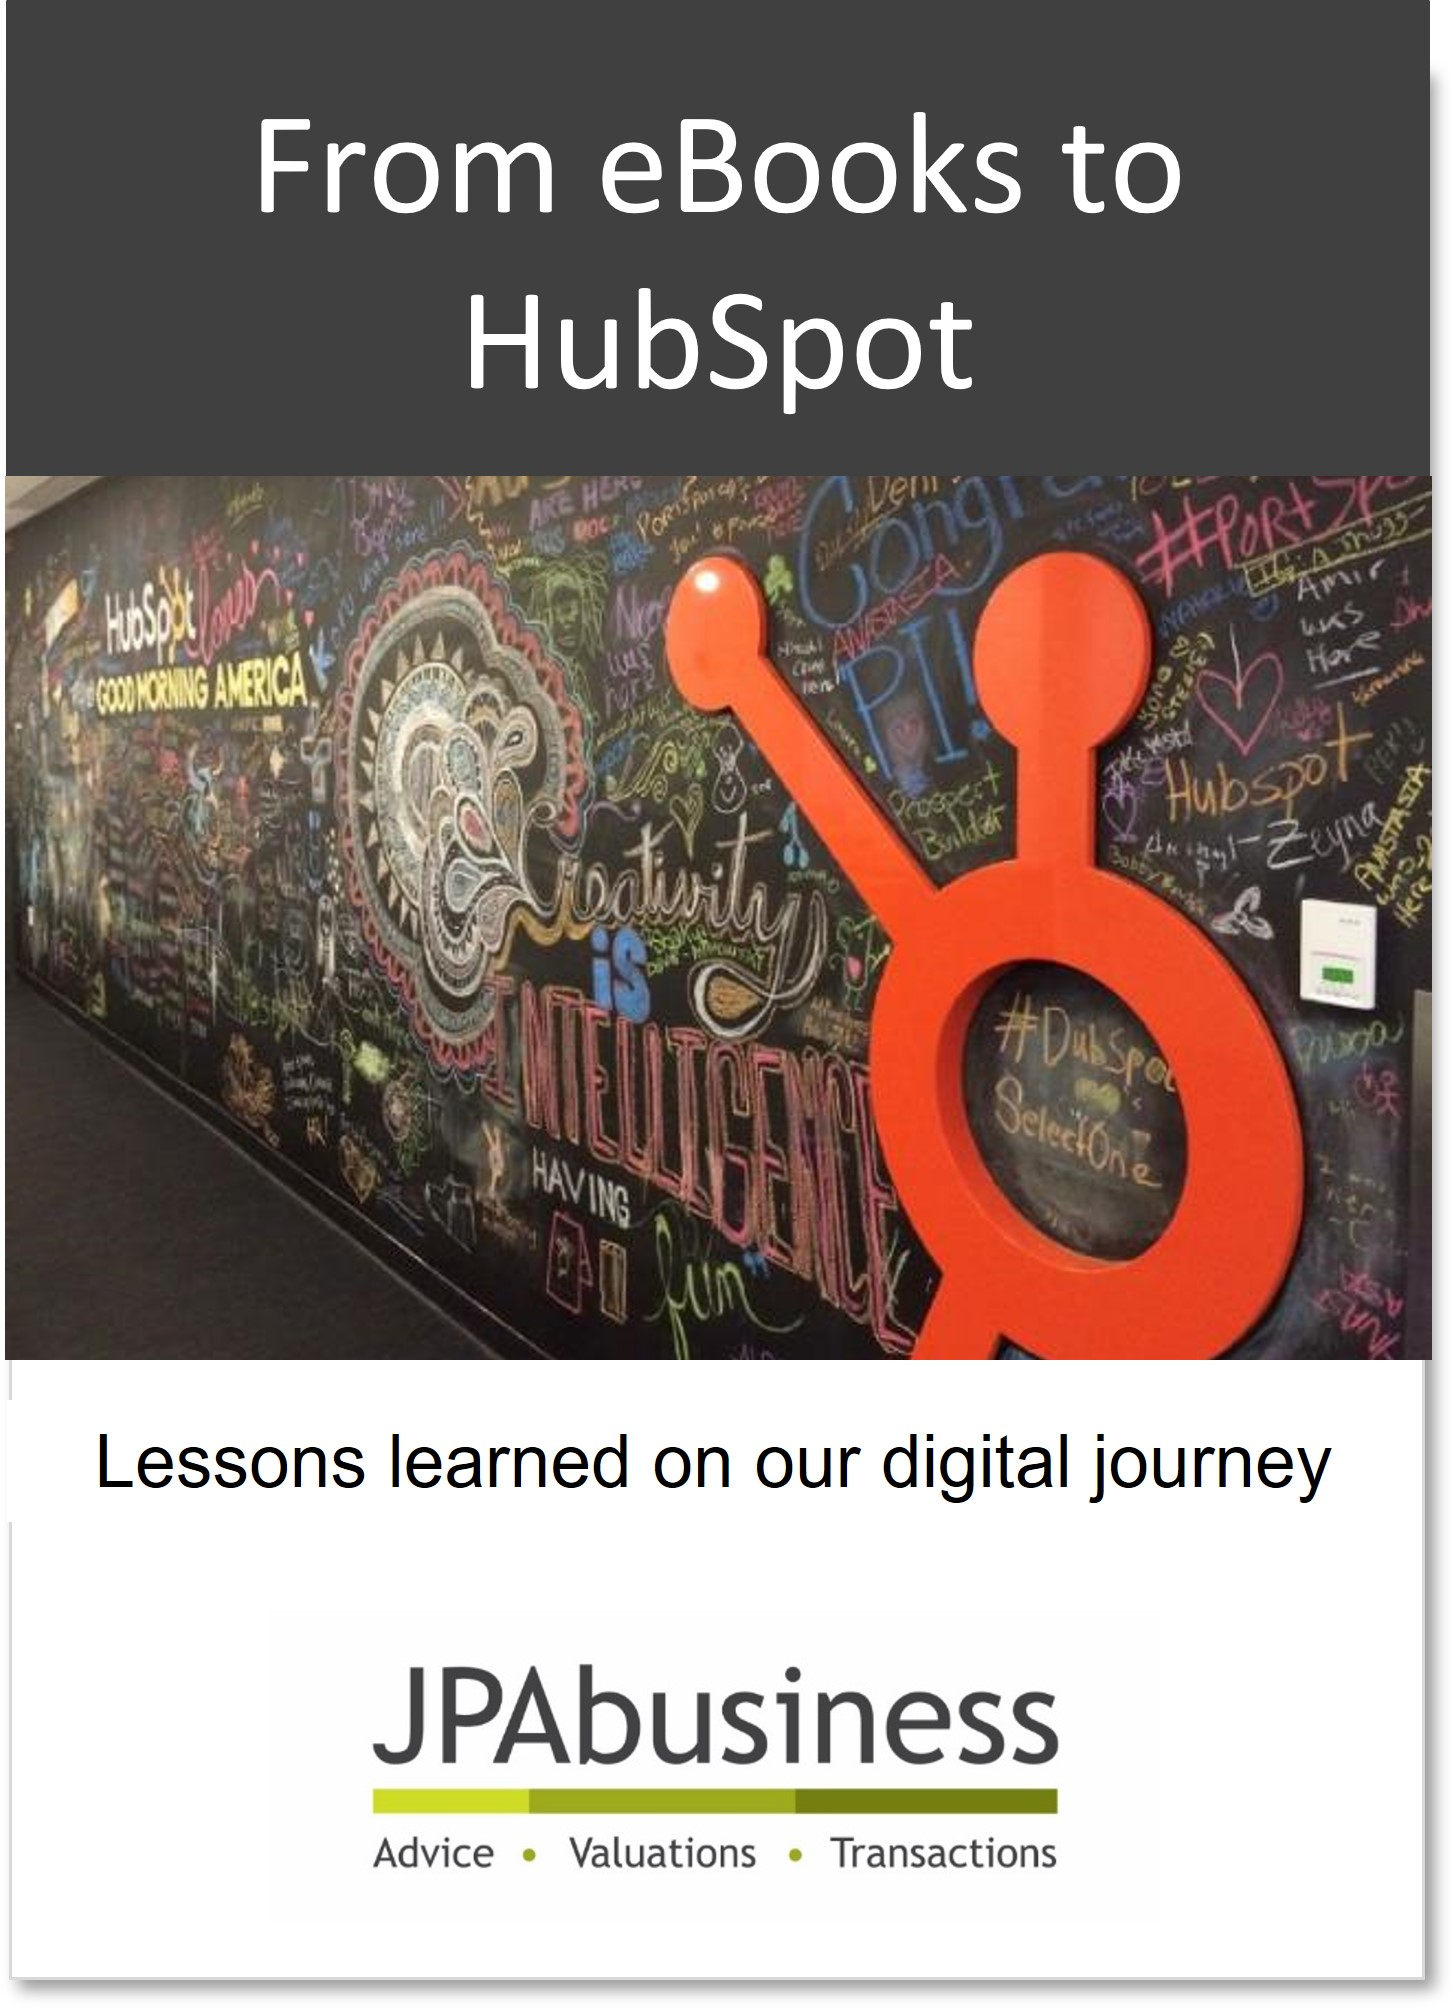 From eBooks to HubSpot | JPAbusiness